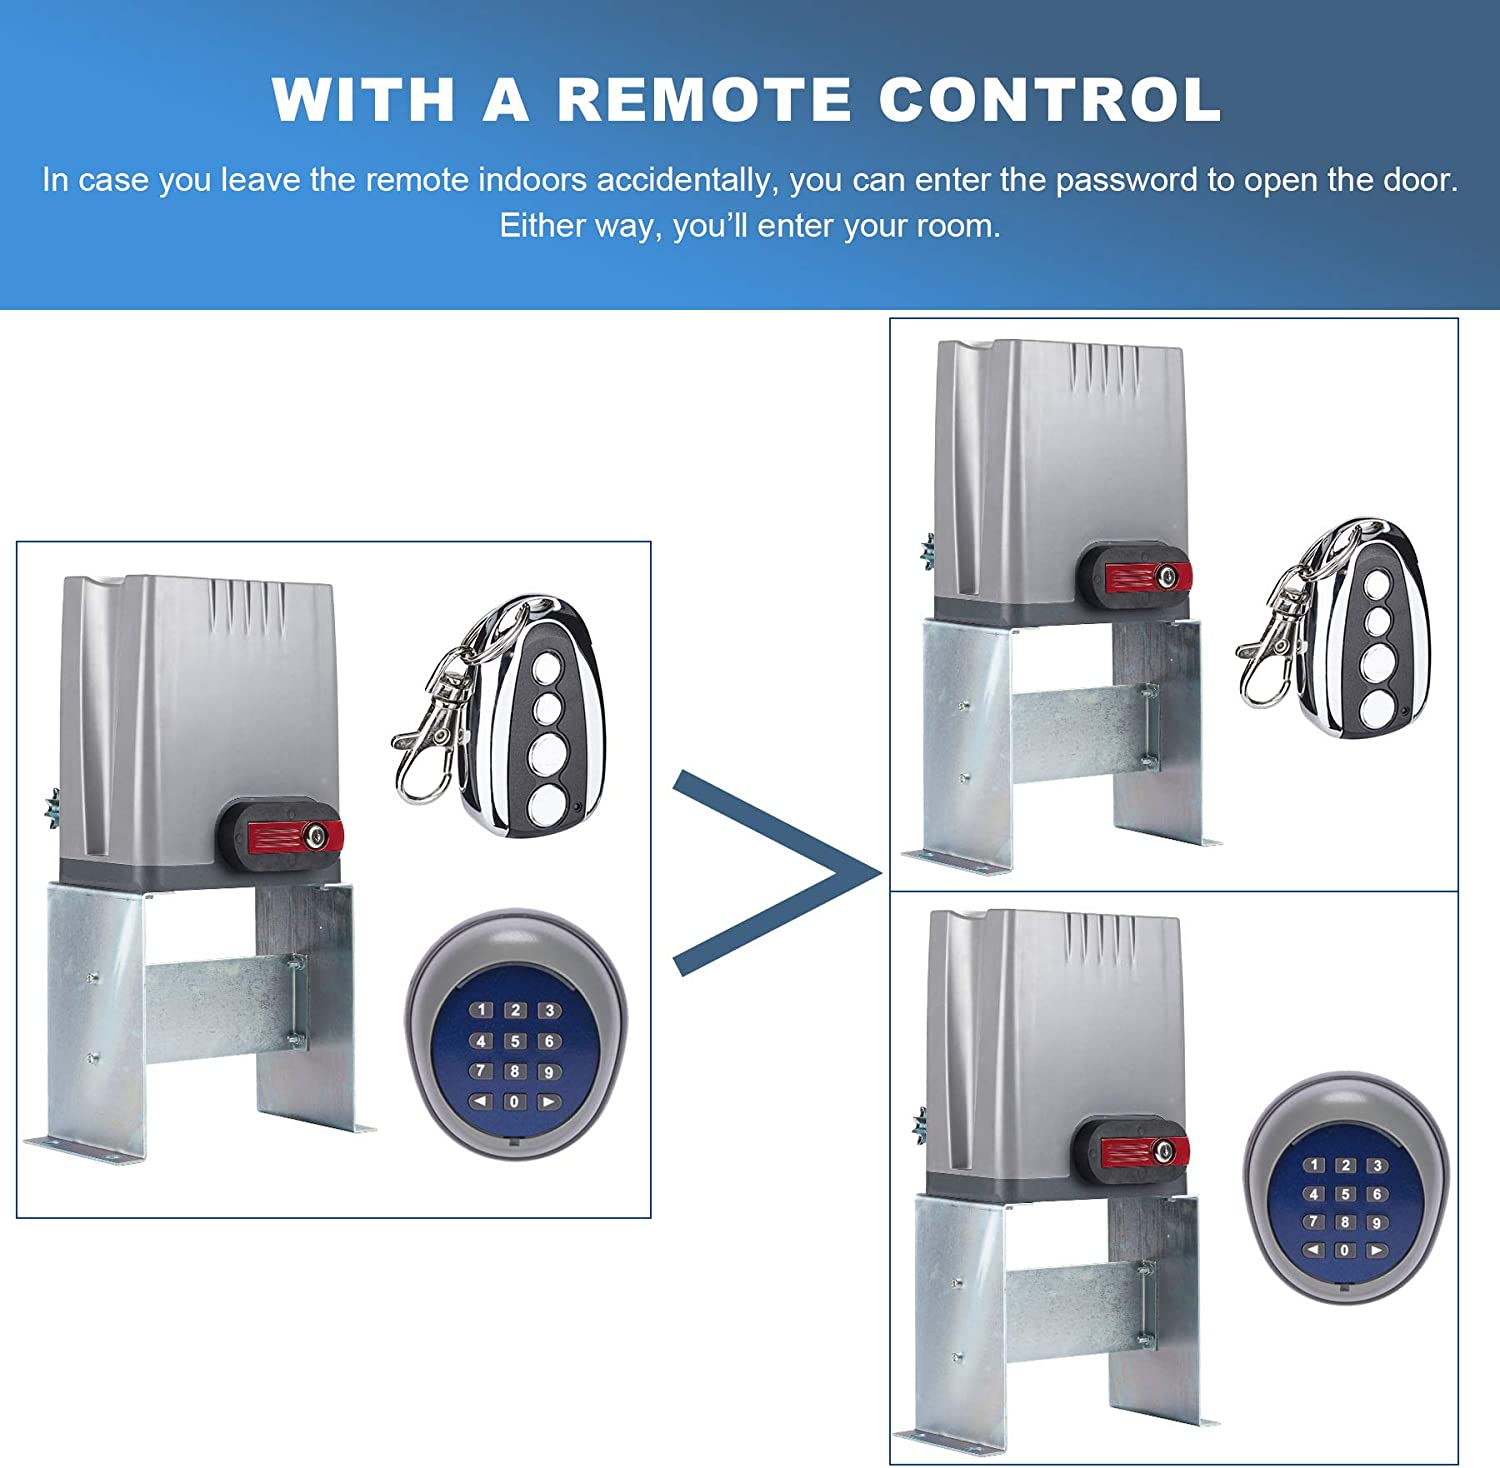 Domingo Petrucci Security Gate Keypad Wireless Entry Remote Operator Panel Control for Automatic Sliding Gate Opener Motor